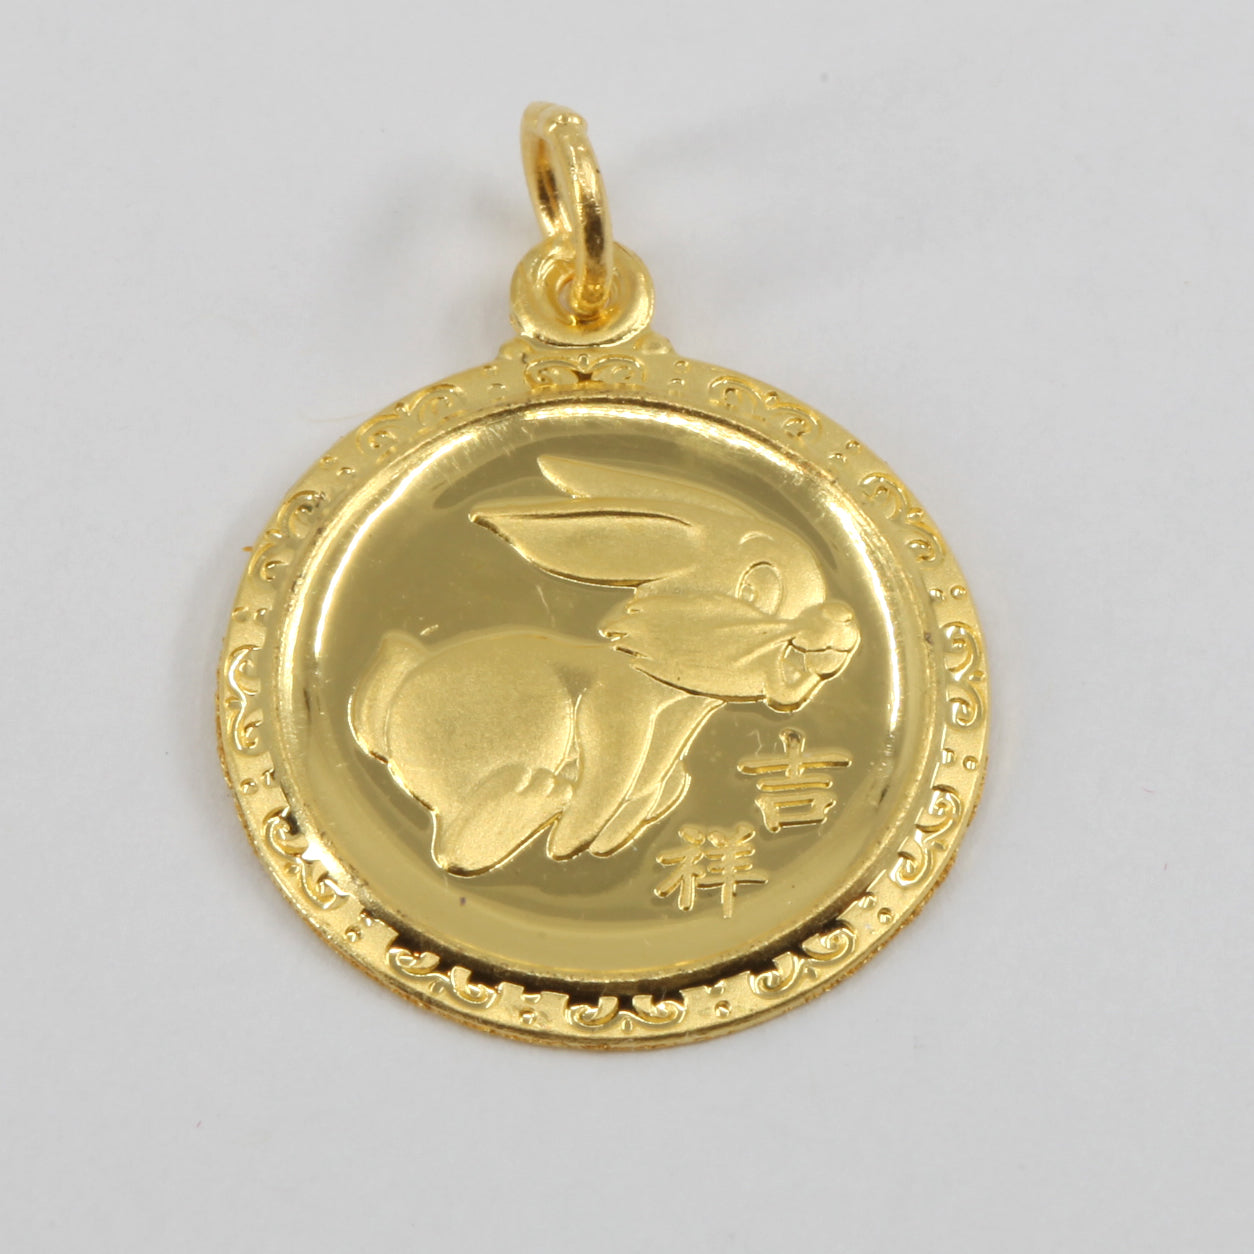 24K Solid Yellow Gold Round Zodiac Rabbit Pendant 4.0 Grams